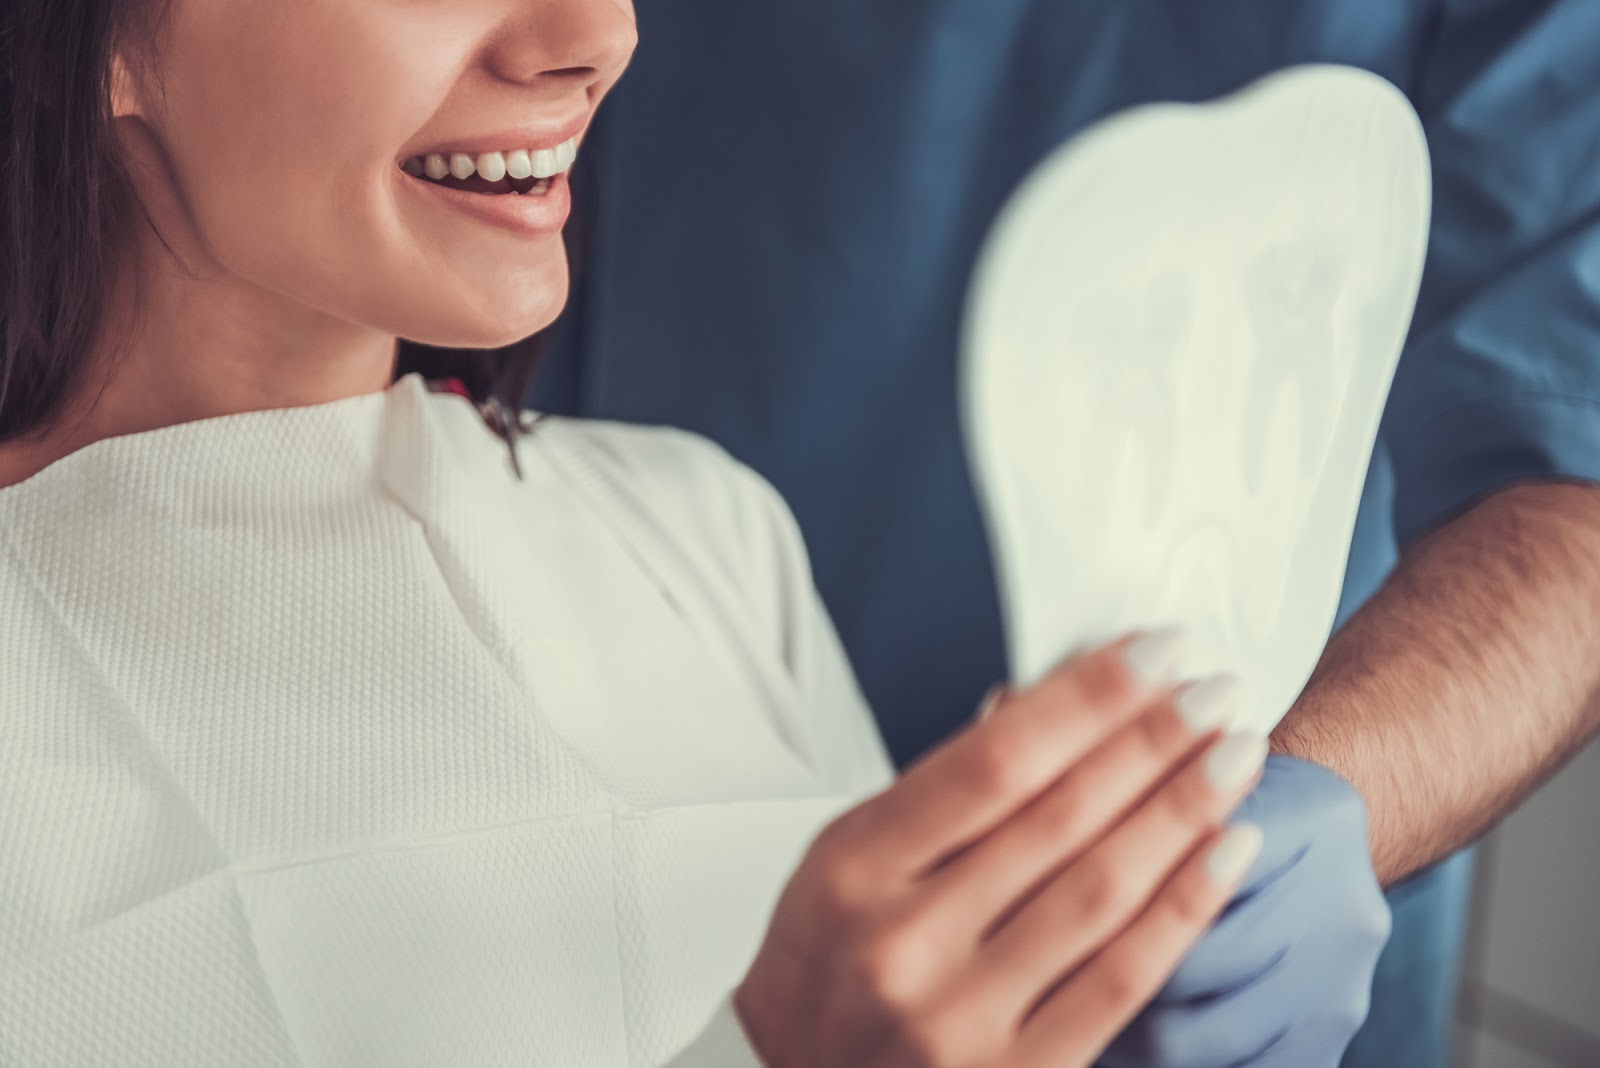 patient admires their smile after dental treatment